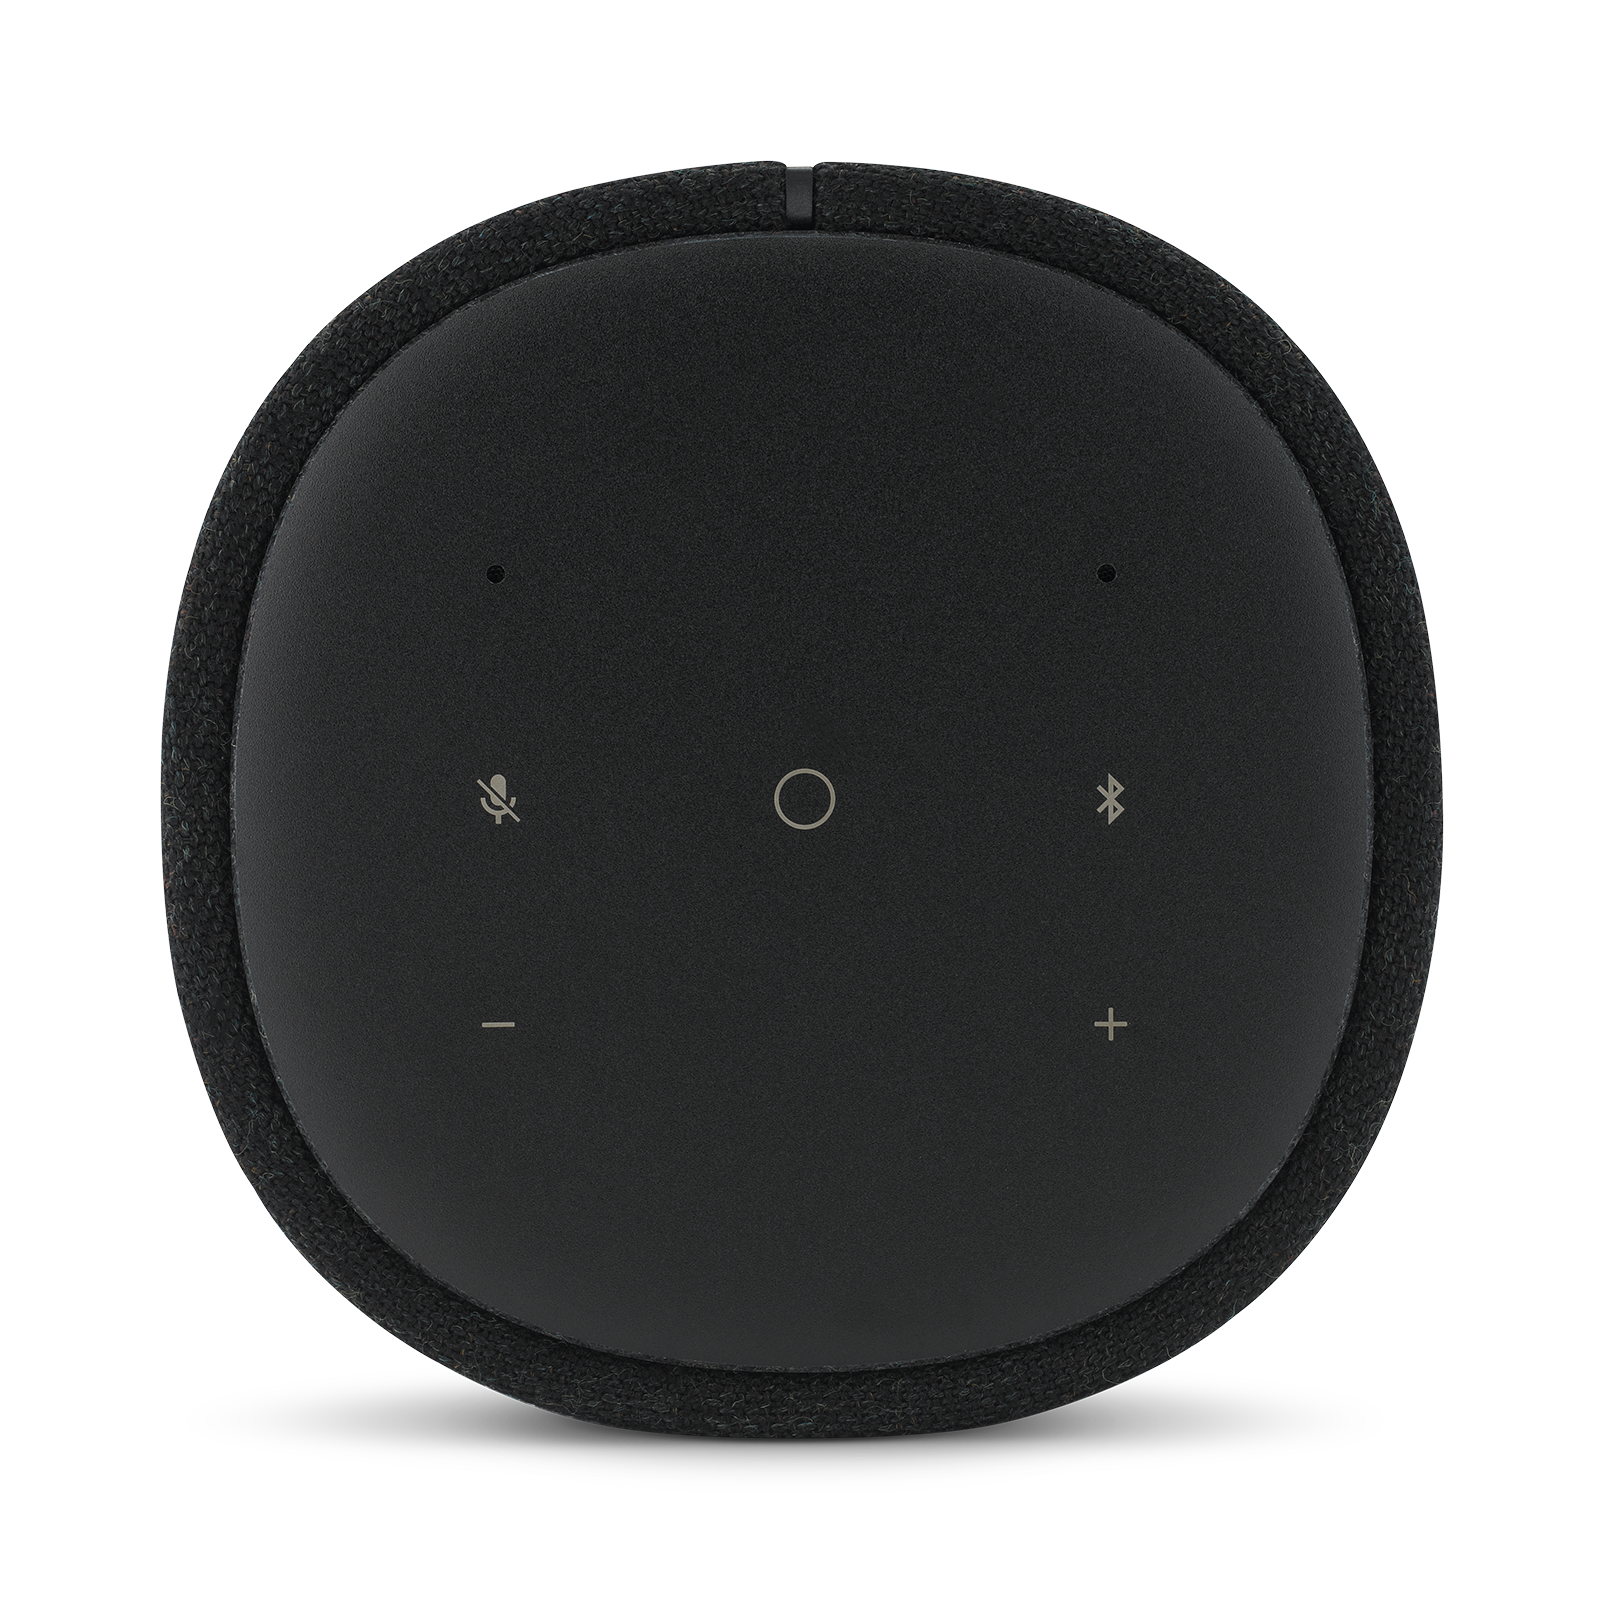 Harman Kardon Citation One MKII - Black - All-in-one smart speaker with room-filling sound - Detailshot 3